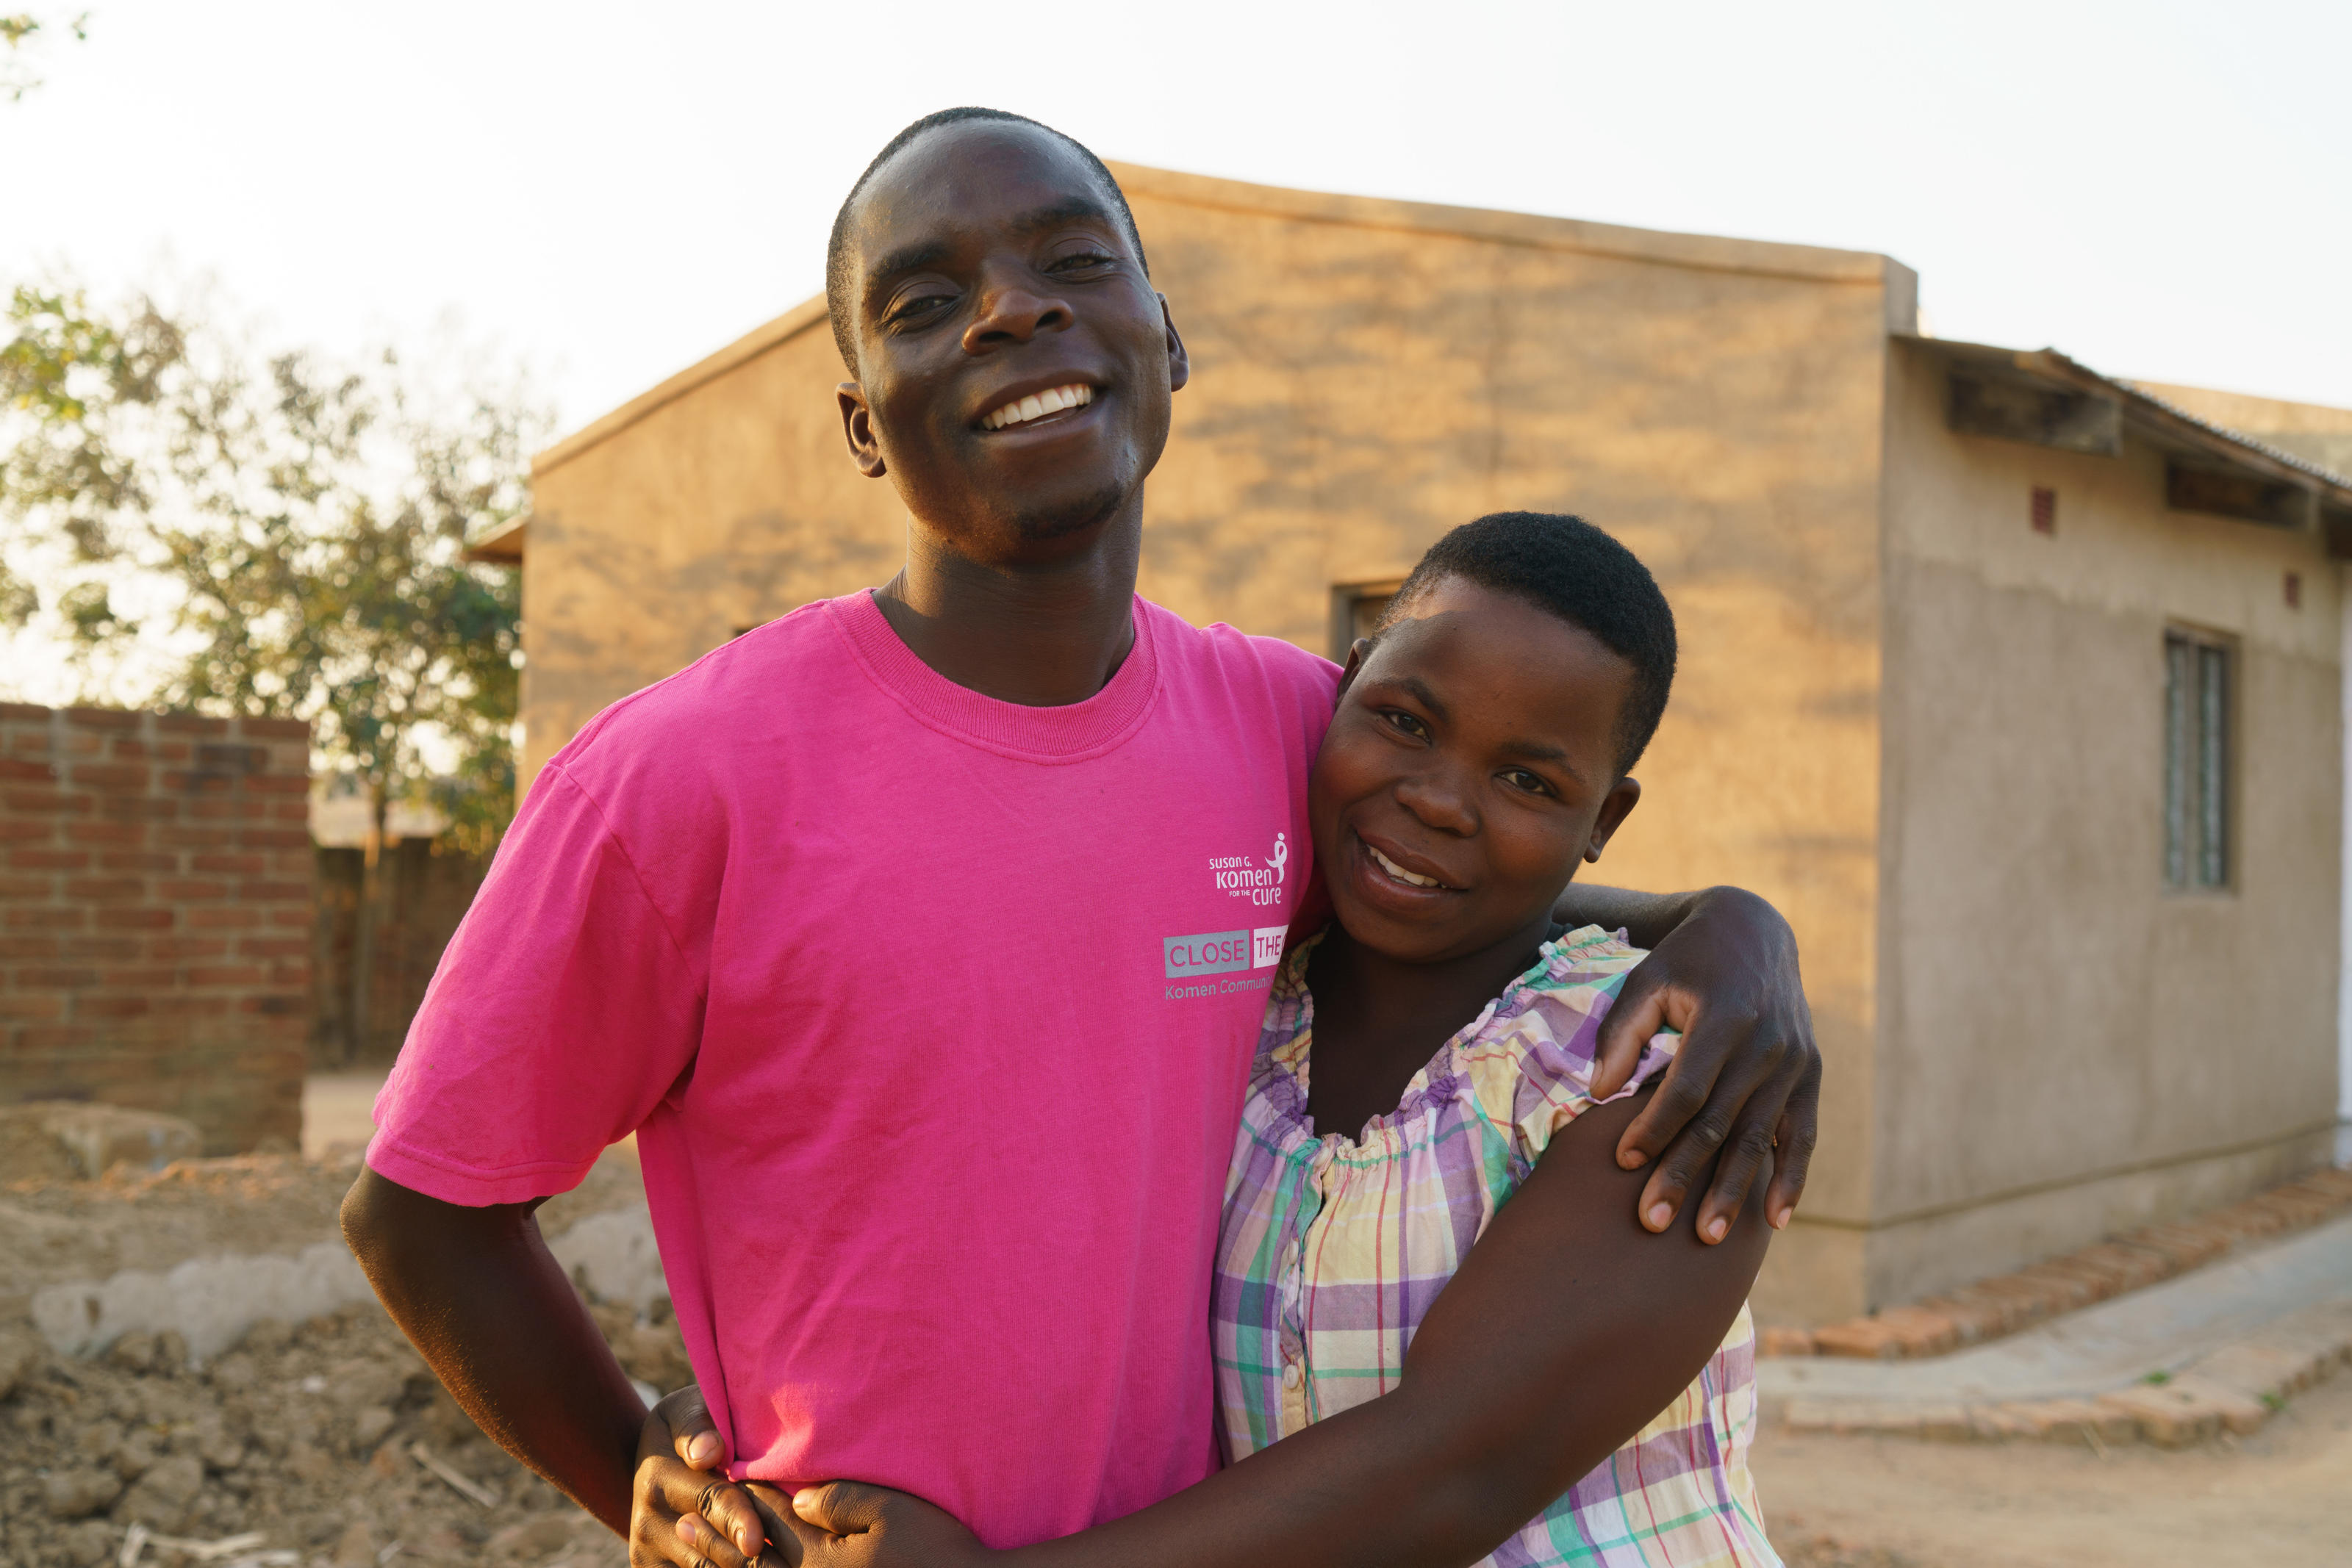 Rafiq and Chrissy, 24, happy to spend more time together, Vimphere, Malawi, September 2017